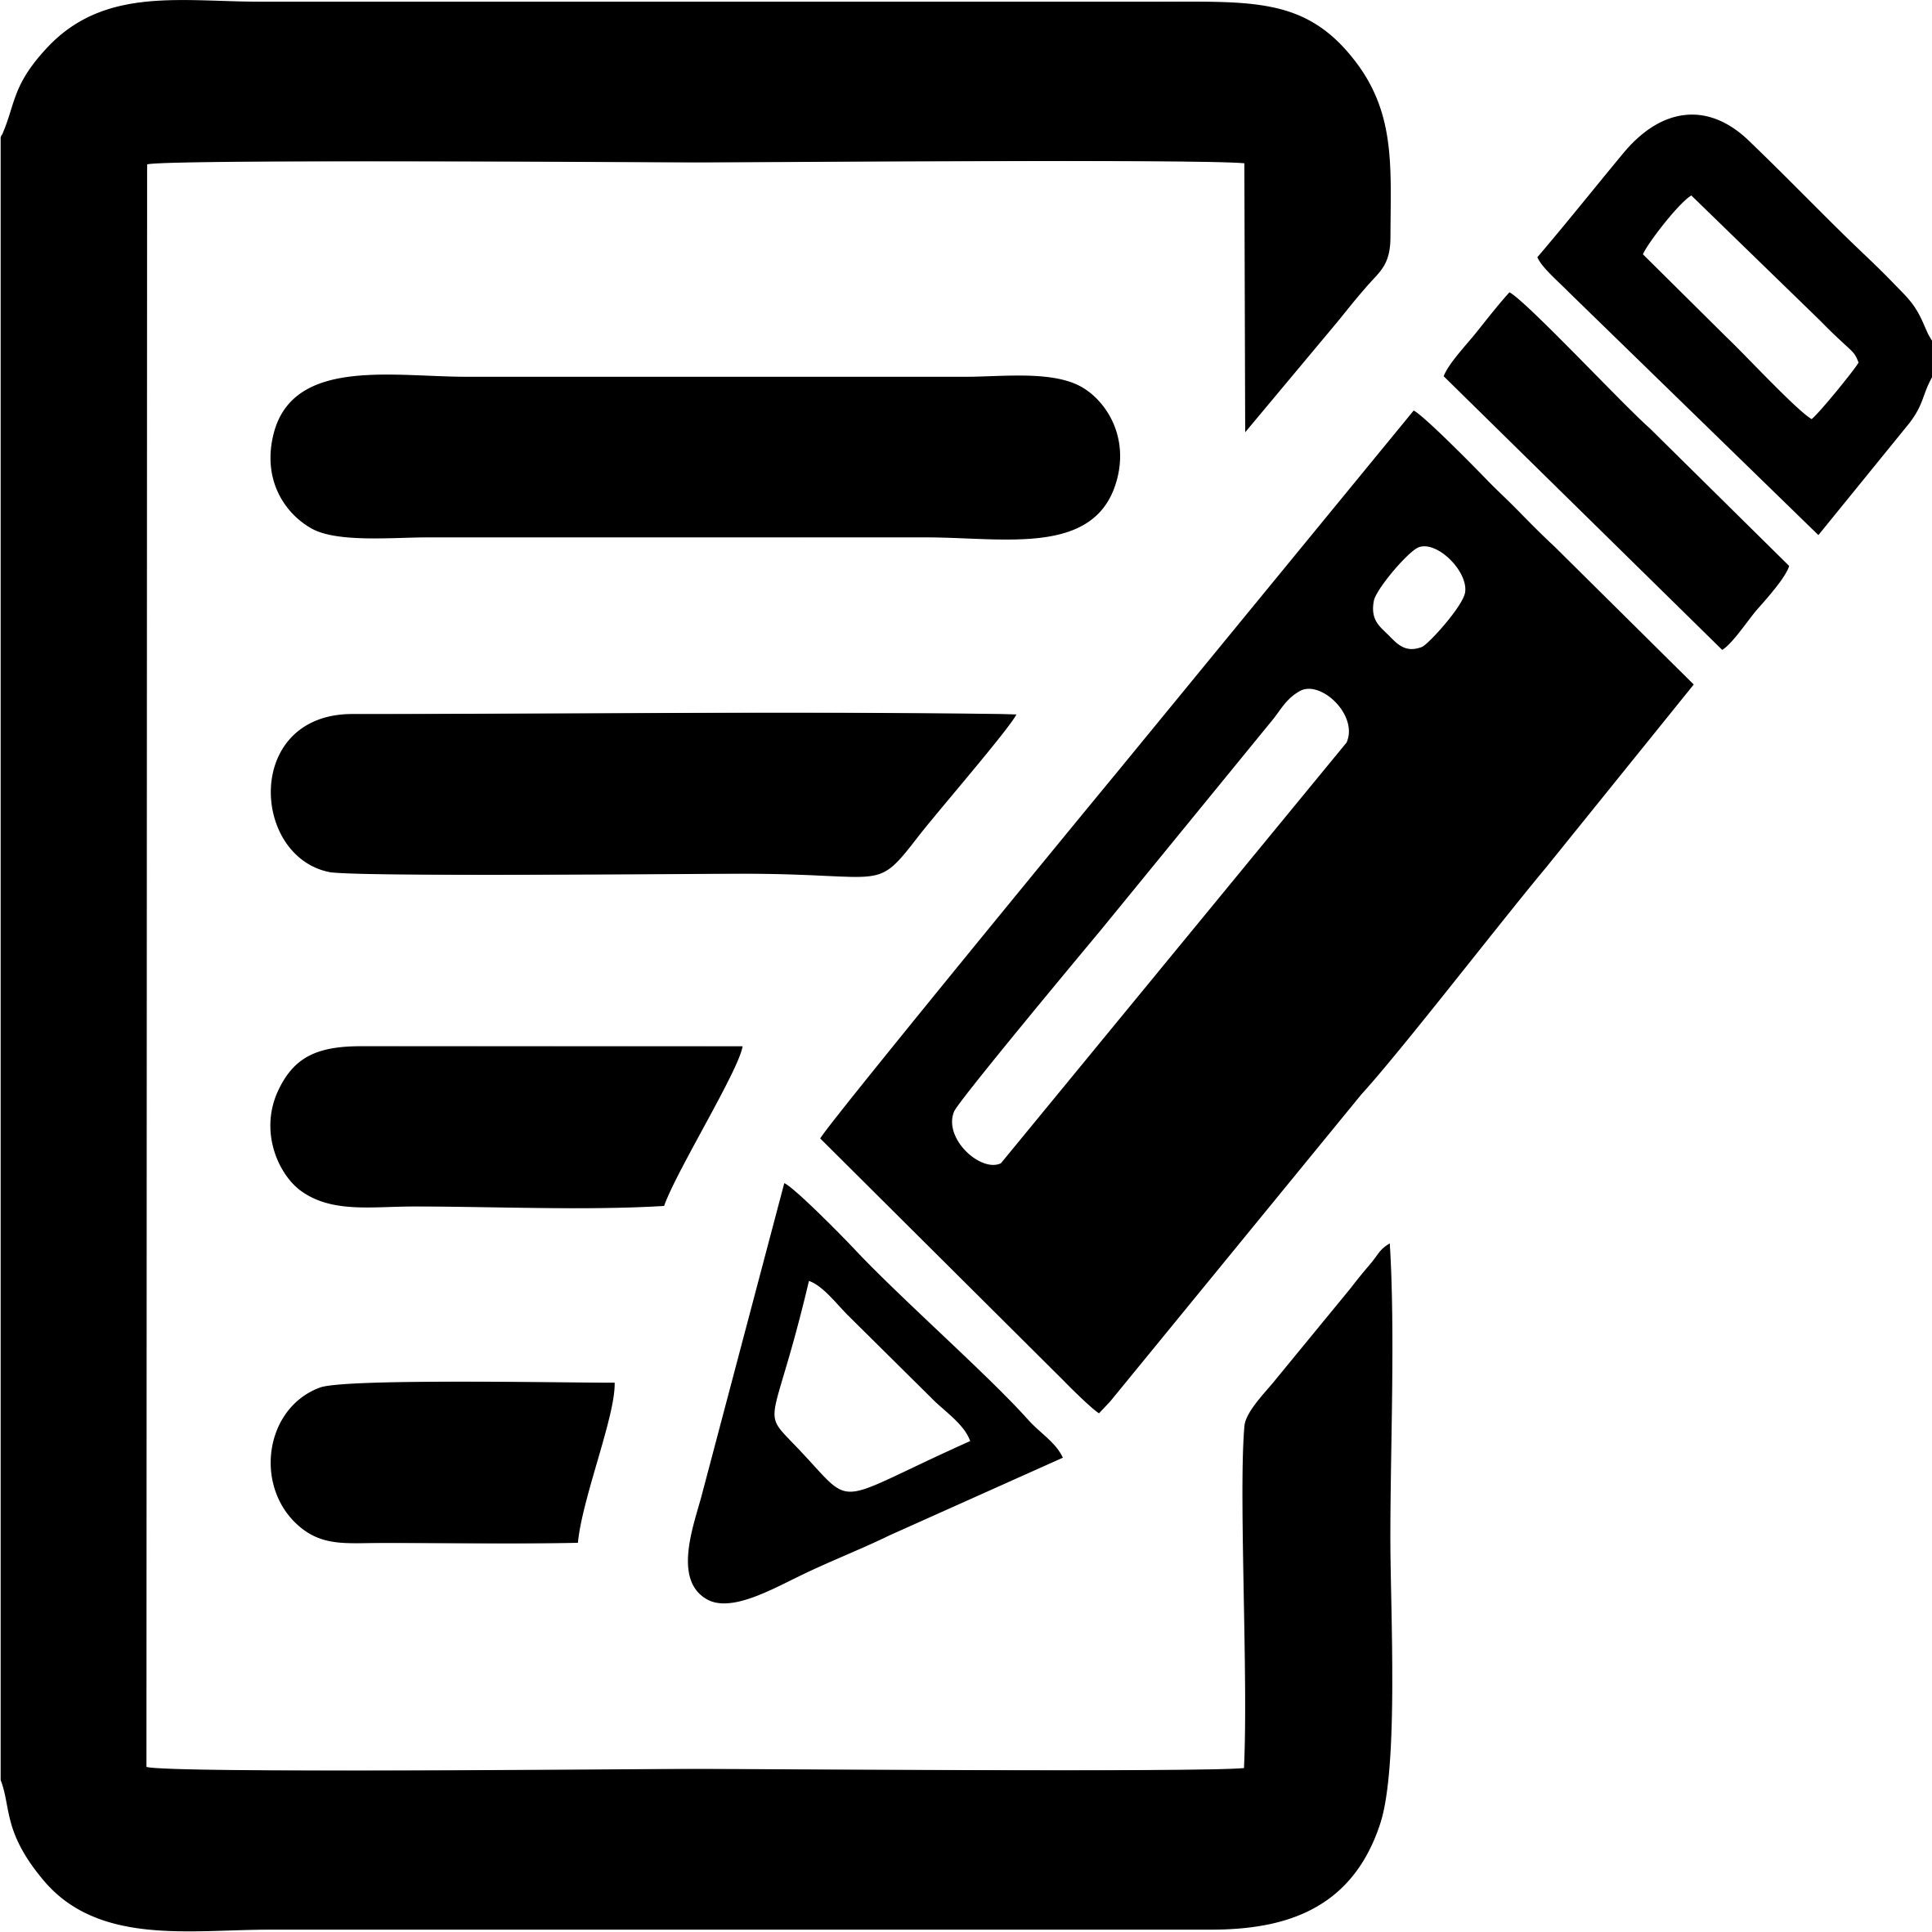 Writing logo png. Computer icons letter writer